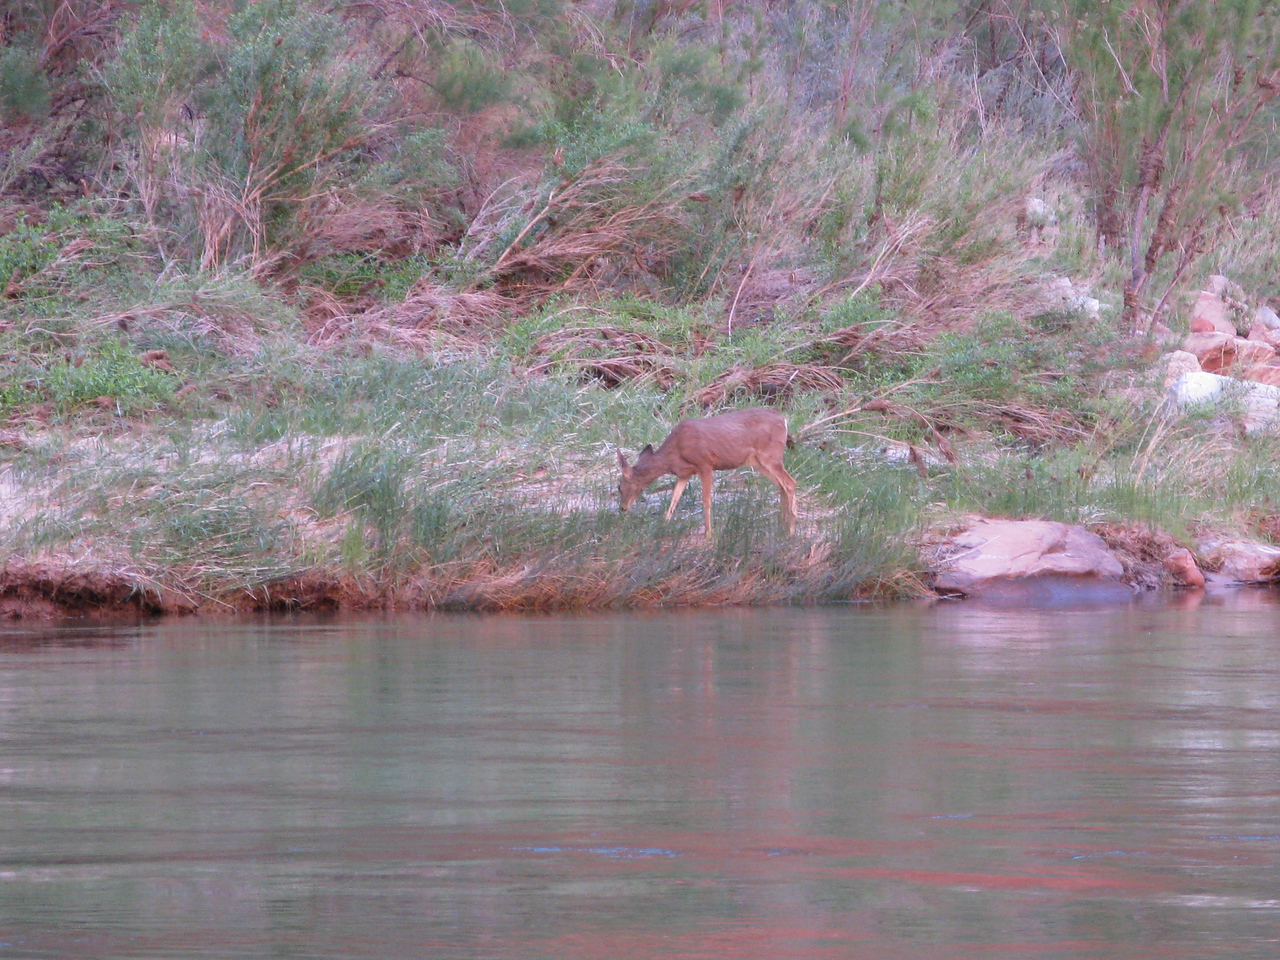 A doe at the river edge.  How did it get down here?  There are cliffs all around this sand bar.